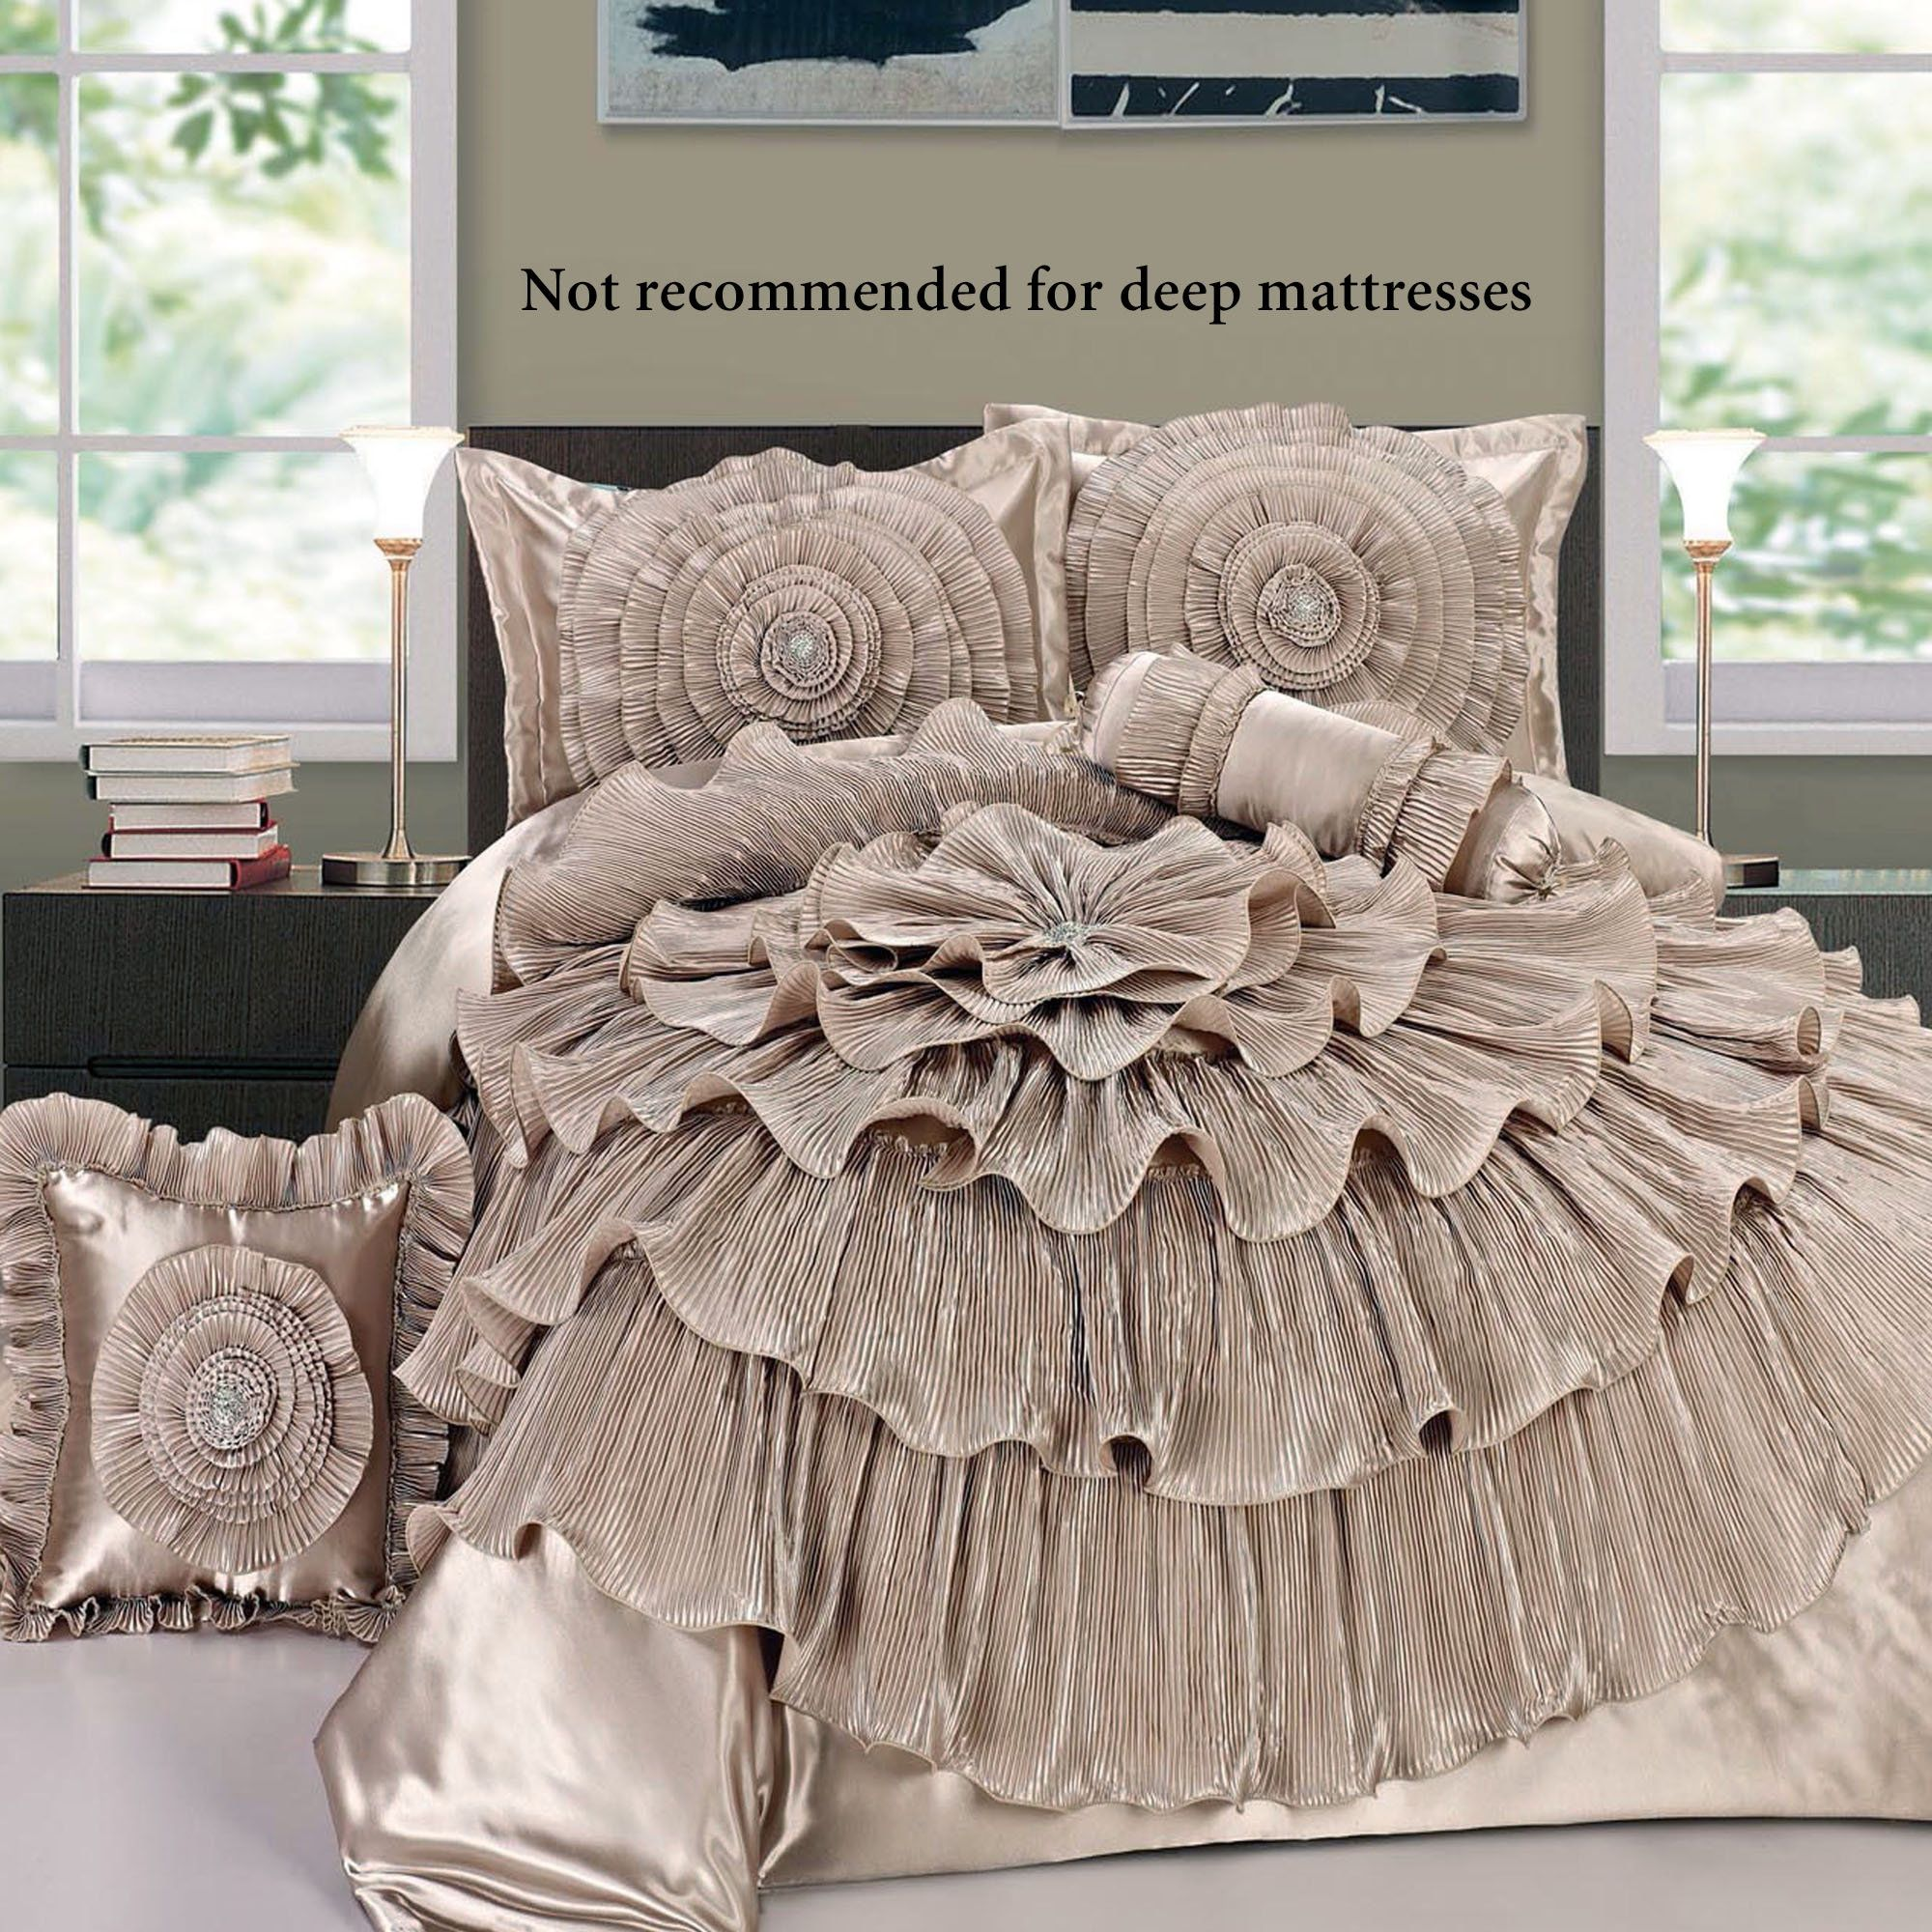 Romantic Bedroom For Her Ruffled Romance Champagne Rosette Comforter Bed Set Comforters